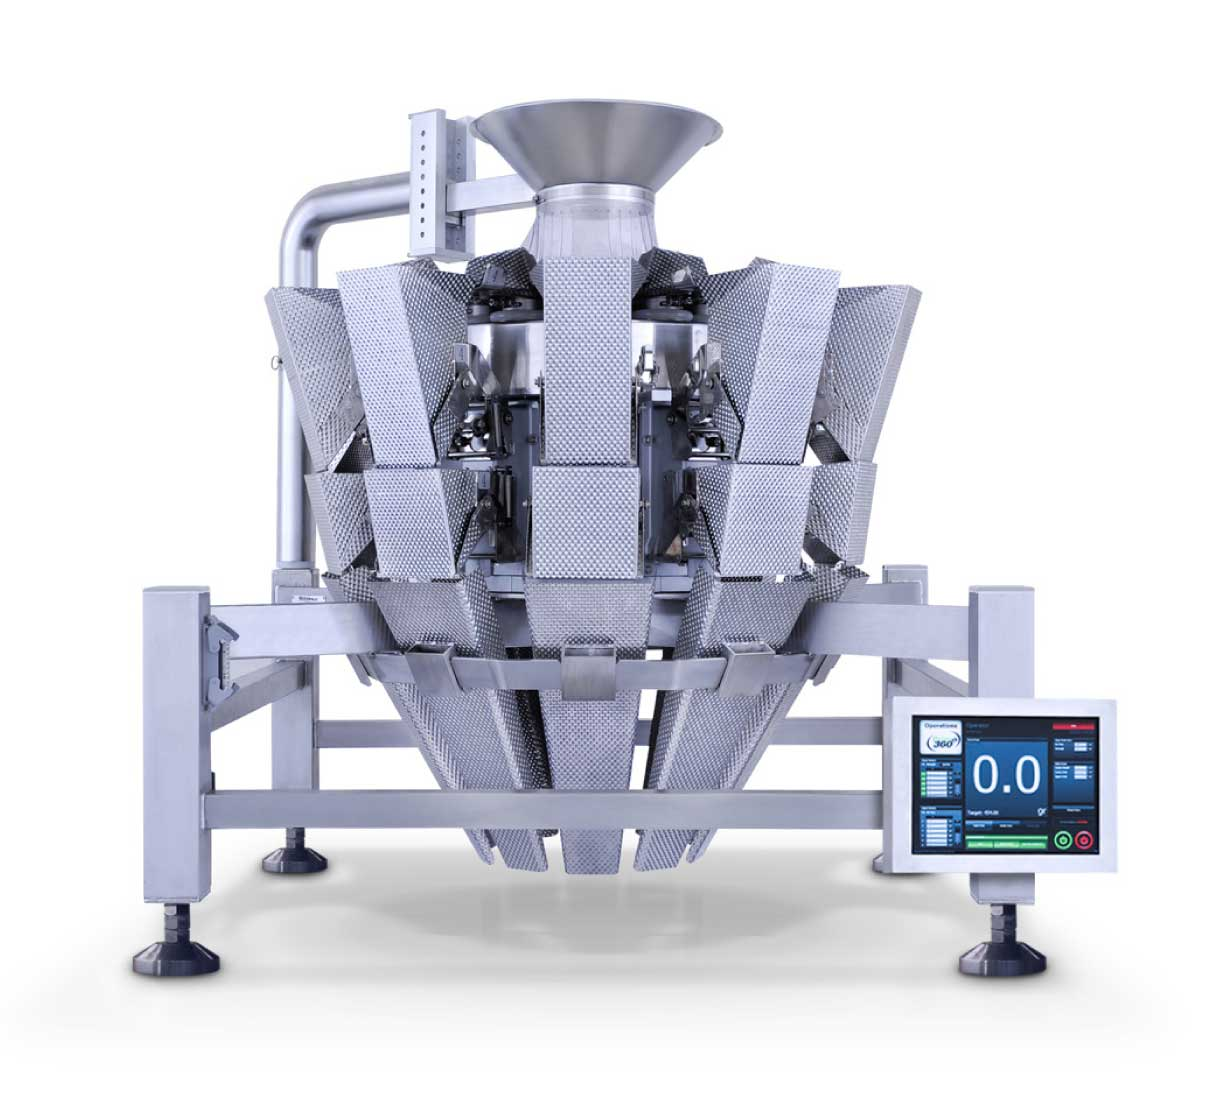 EZPACKAGE Weigher by Paxiom is Part of the Primo Combi weighing/packing system.